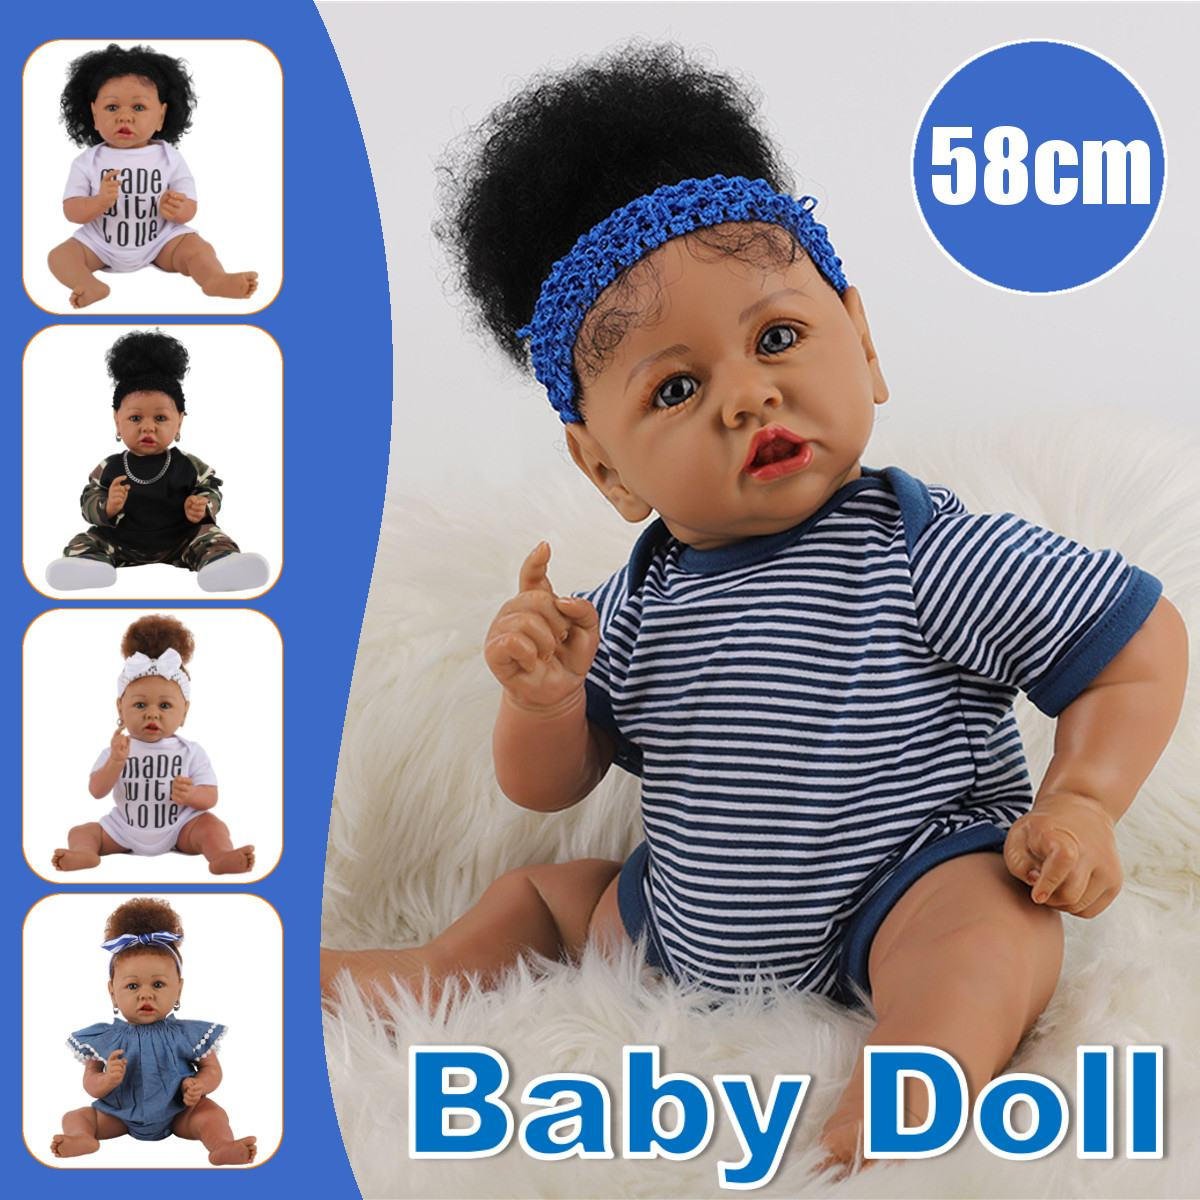 58cm Rebron Girl Doll 23inch New Bron Soft Silicone Reborn Toddler Baby Dolls Christmas And Birthday Best Gift lol Doll Toy Gift